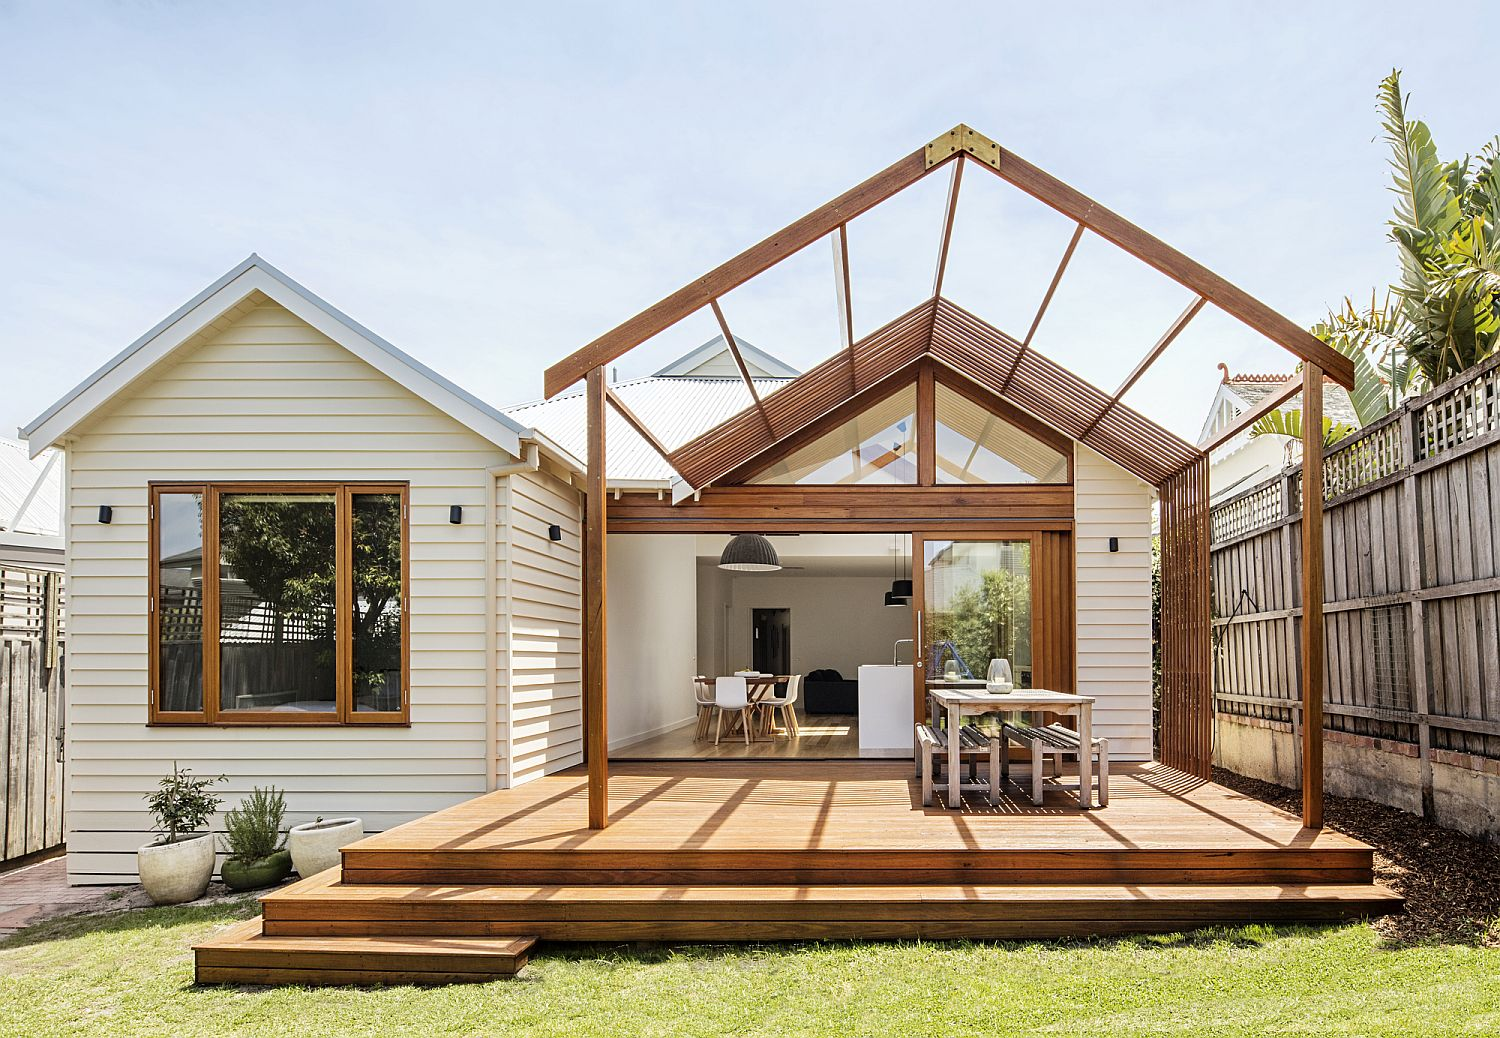 Timber and glass pergola structure at the rear of the Aussie home